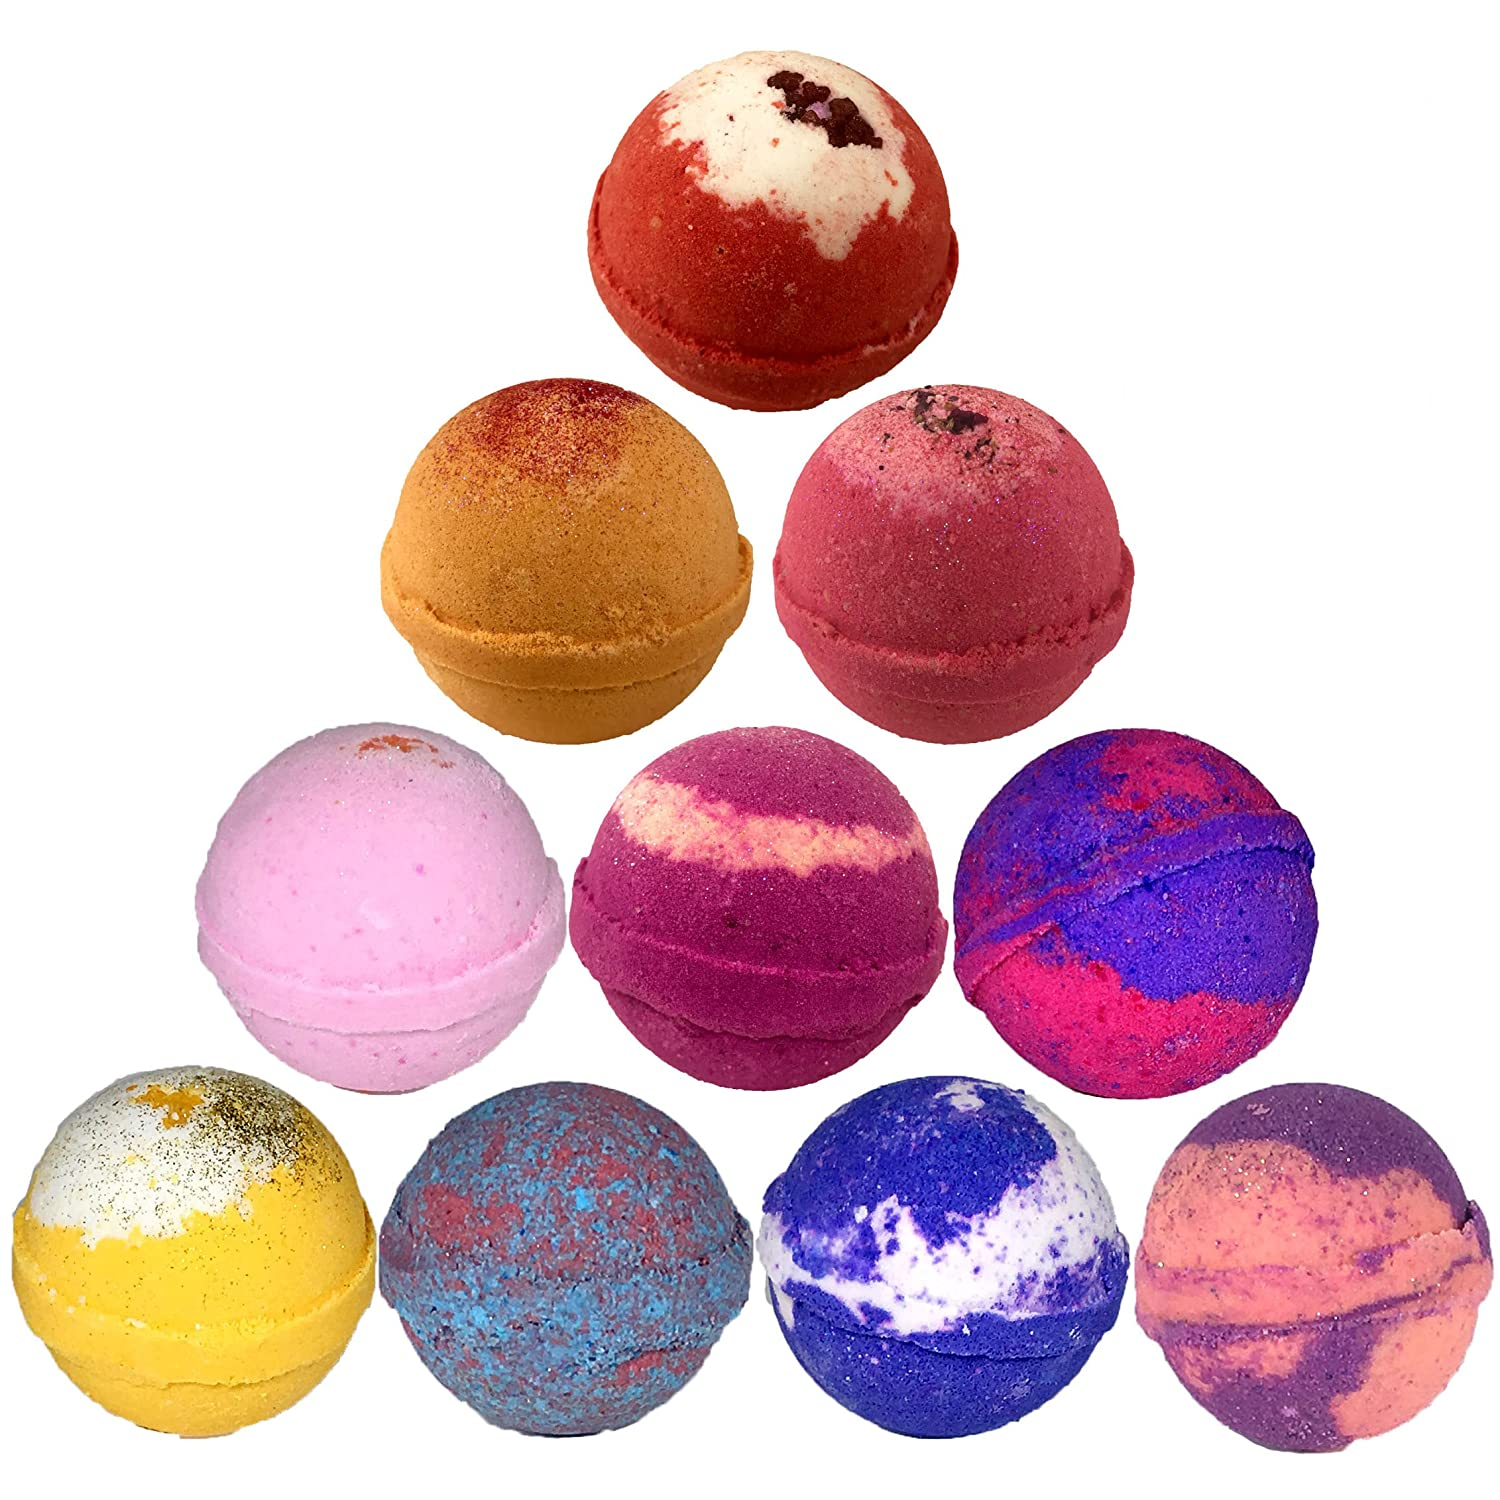 Bath Bombs 10 Wholesale Bath Bombs Similar To Lush, Large, 4.5 oz. Lotion Fast 10 pack